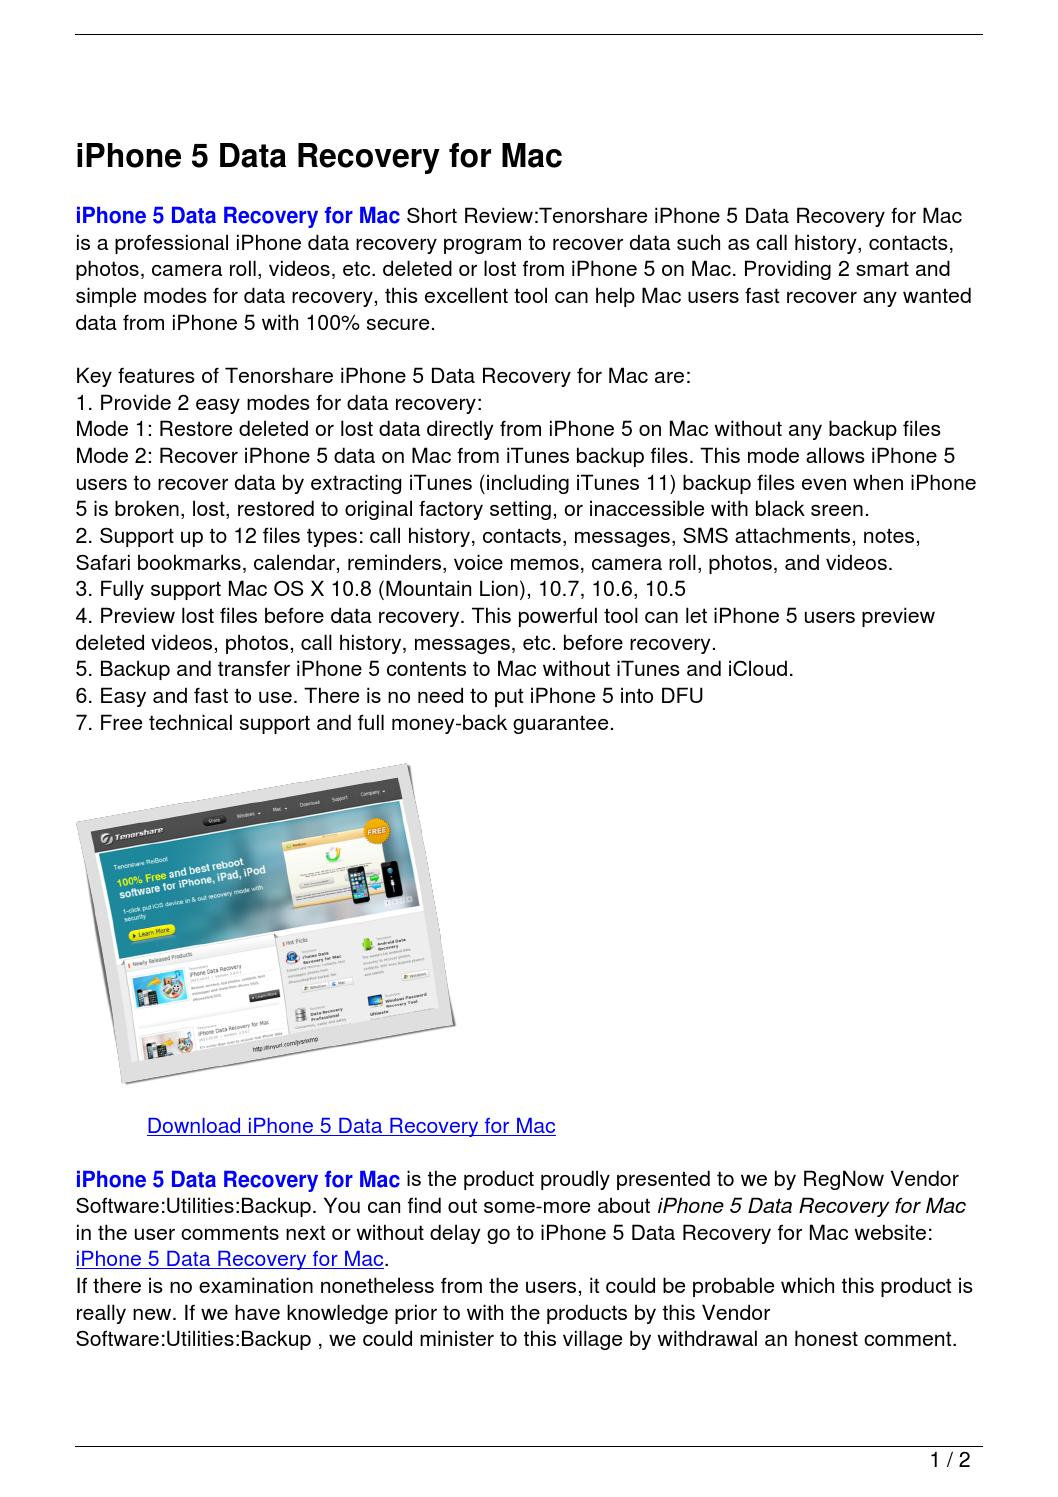 iPhone 5 Data Recovery for Mac by Bochiha Mazdoucni  Issuu